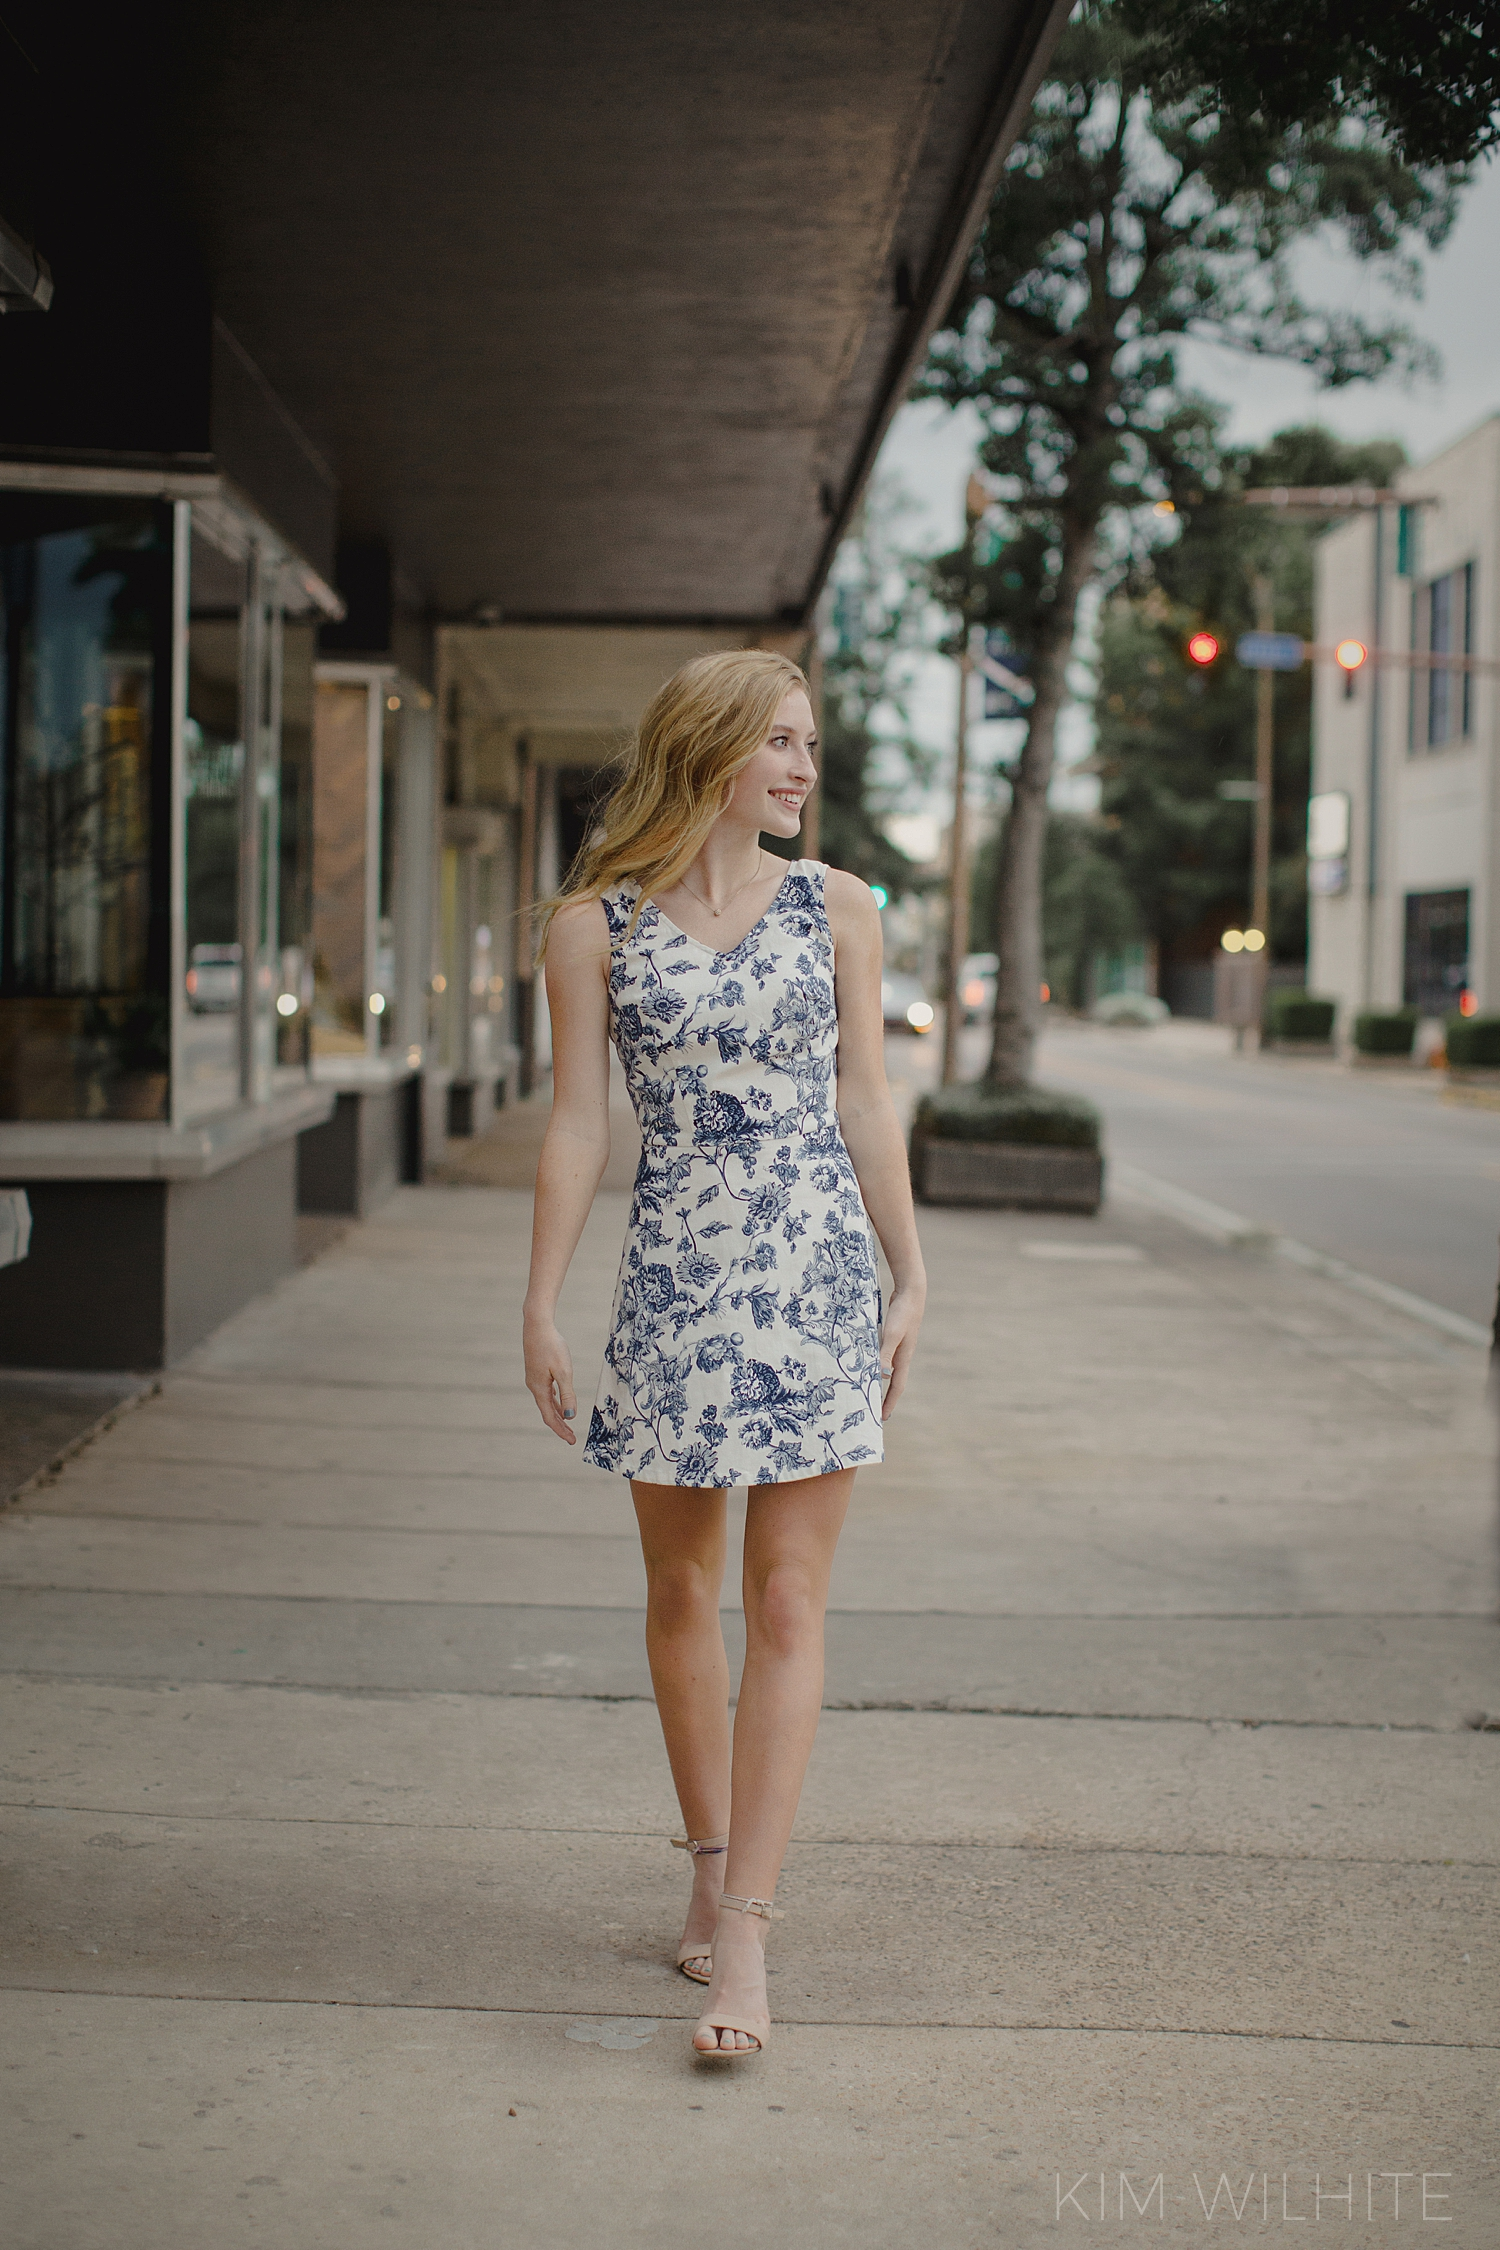 downtown-monroe-senior-pictures-130.jpg